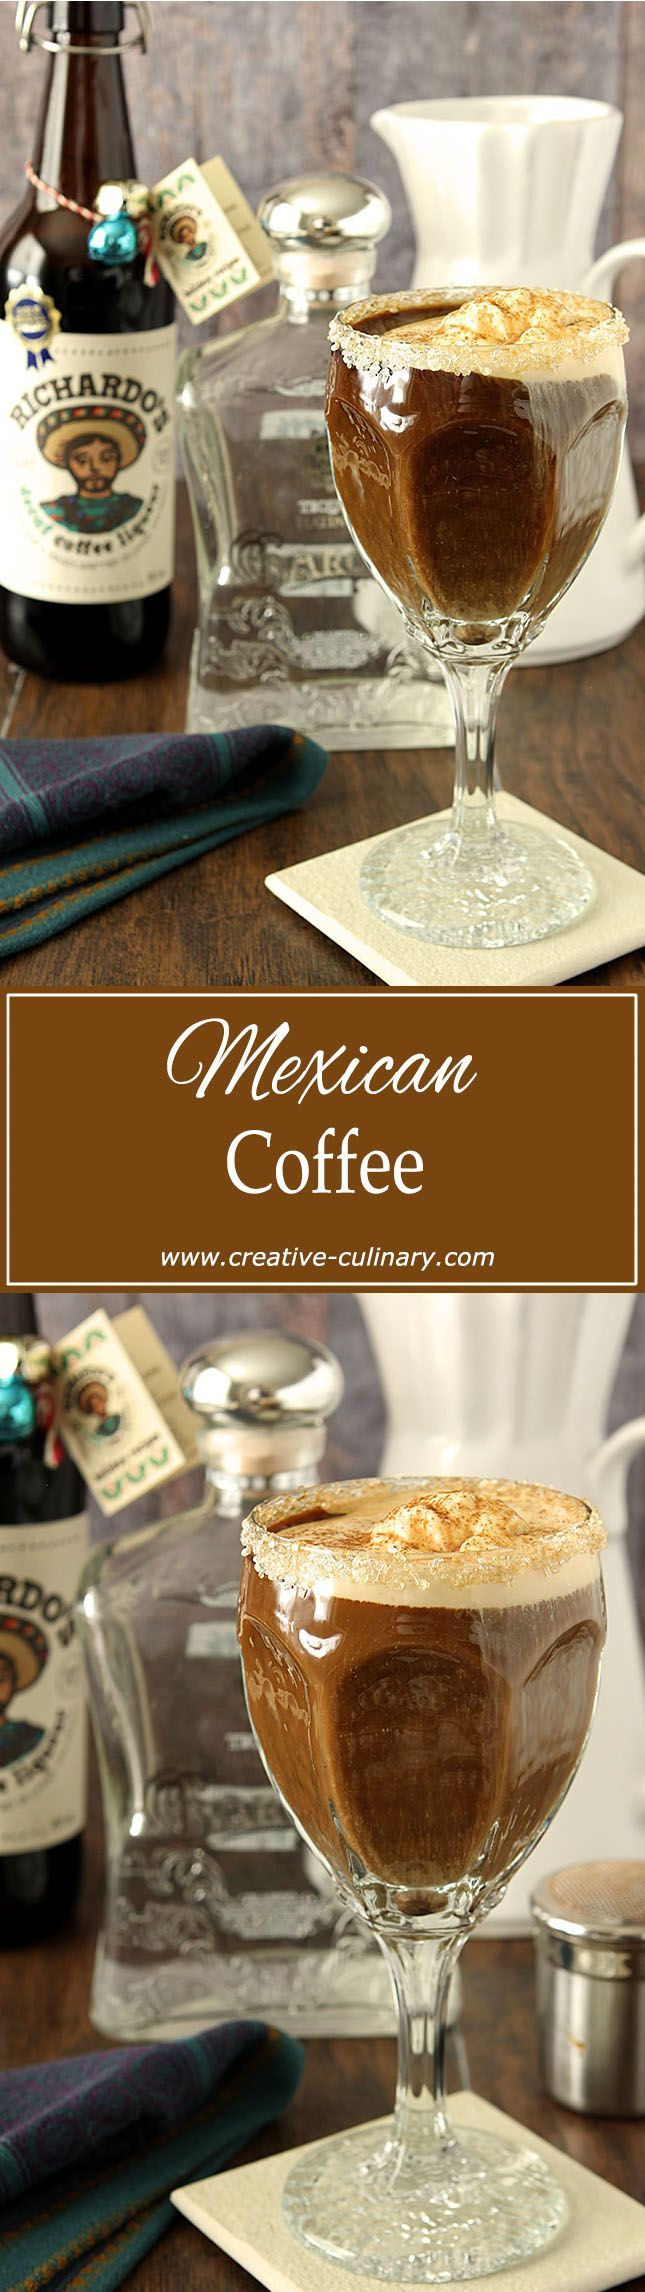 No trip to Cabo San Lucas necessary; now you can make this iconic Mexican Coffee at home! via @creativculinary